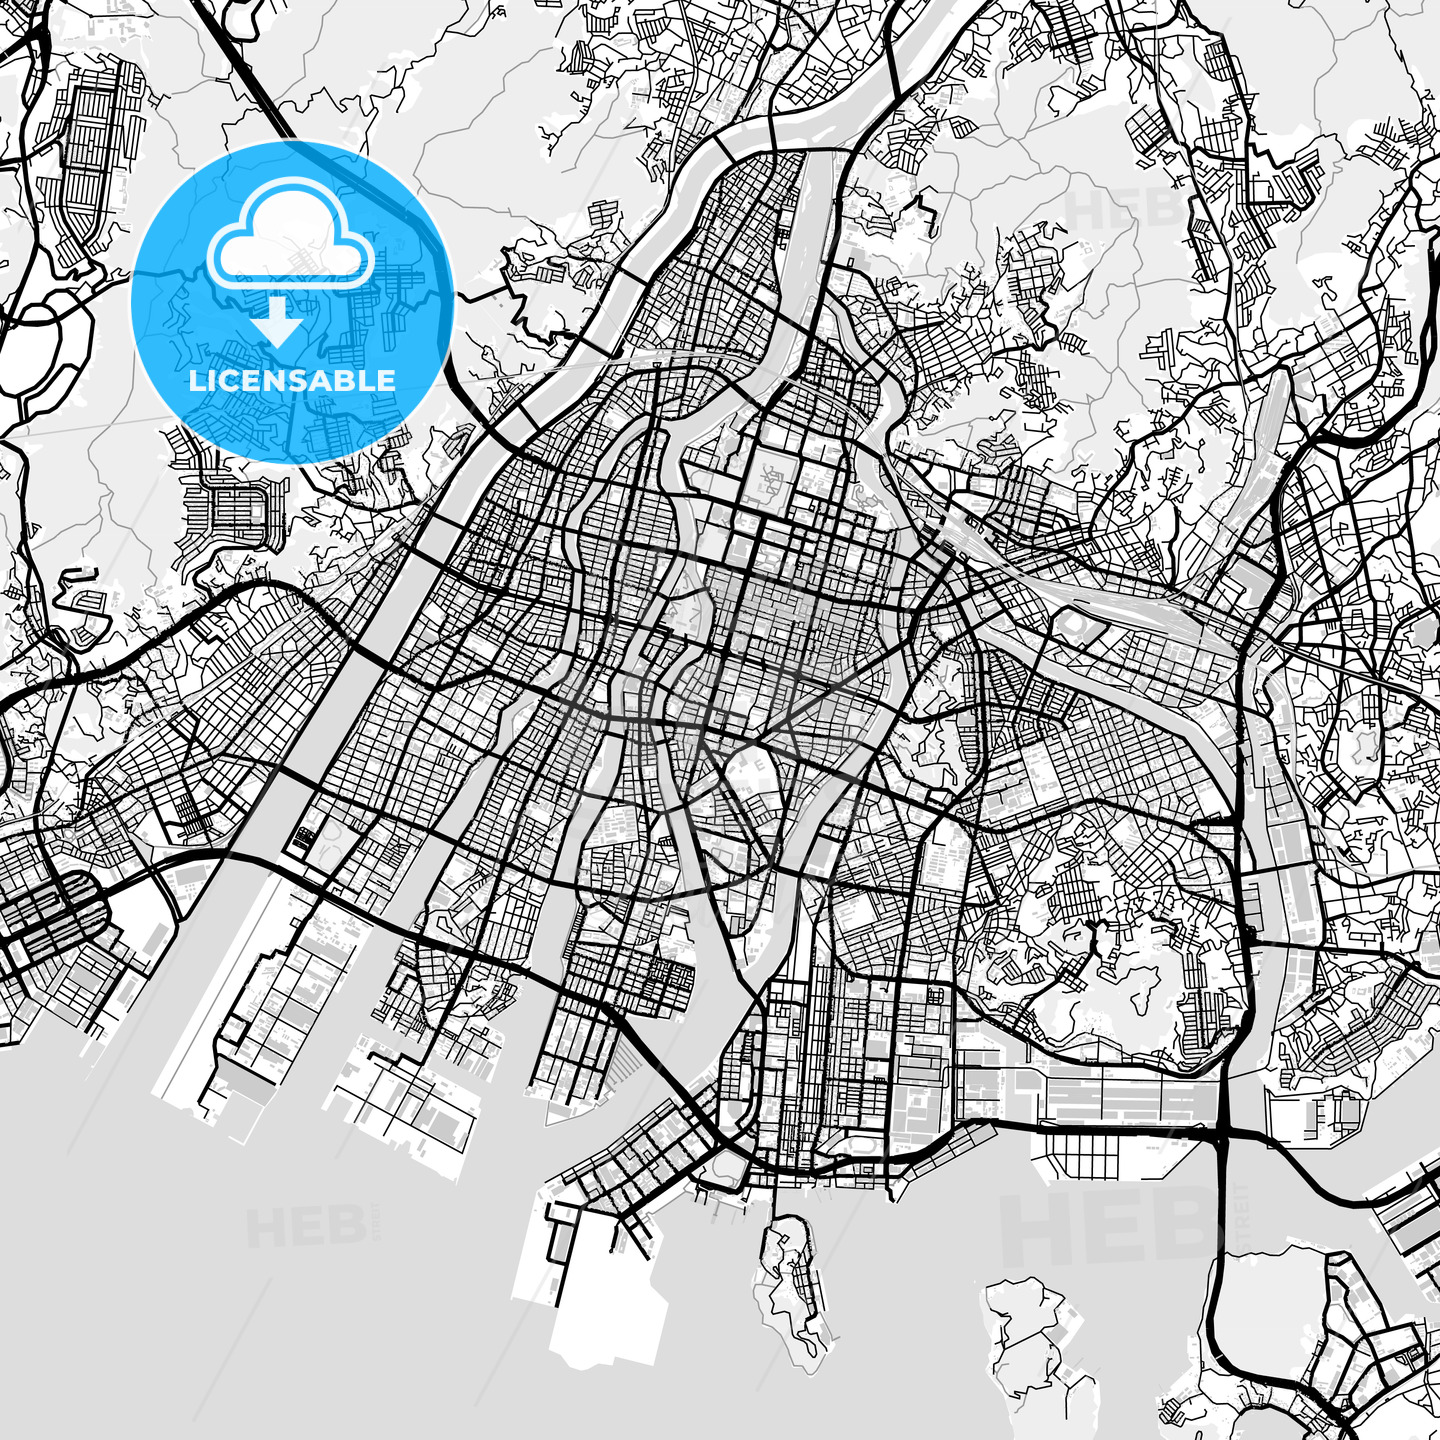 Downtown map of Hiroshima, Japan (広島市) | HEBSTREITS Sketches